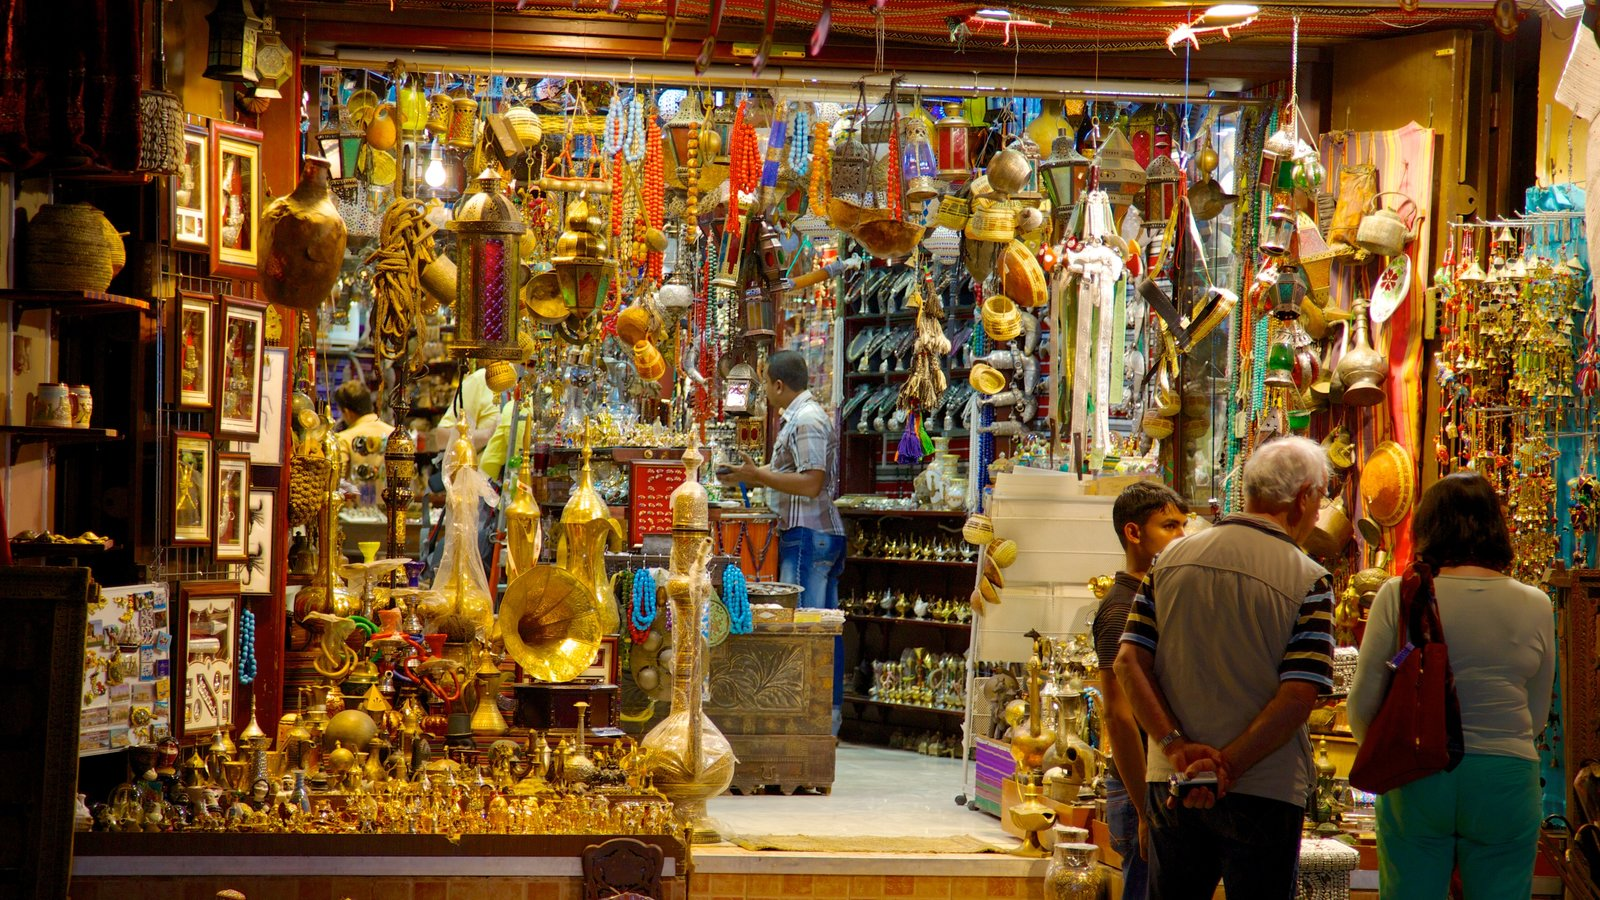 Muttrah Souq which includes shopping, city views and markets